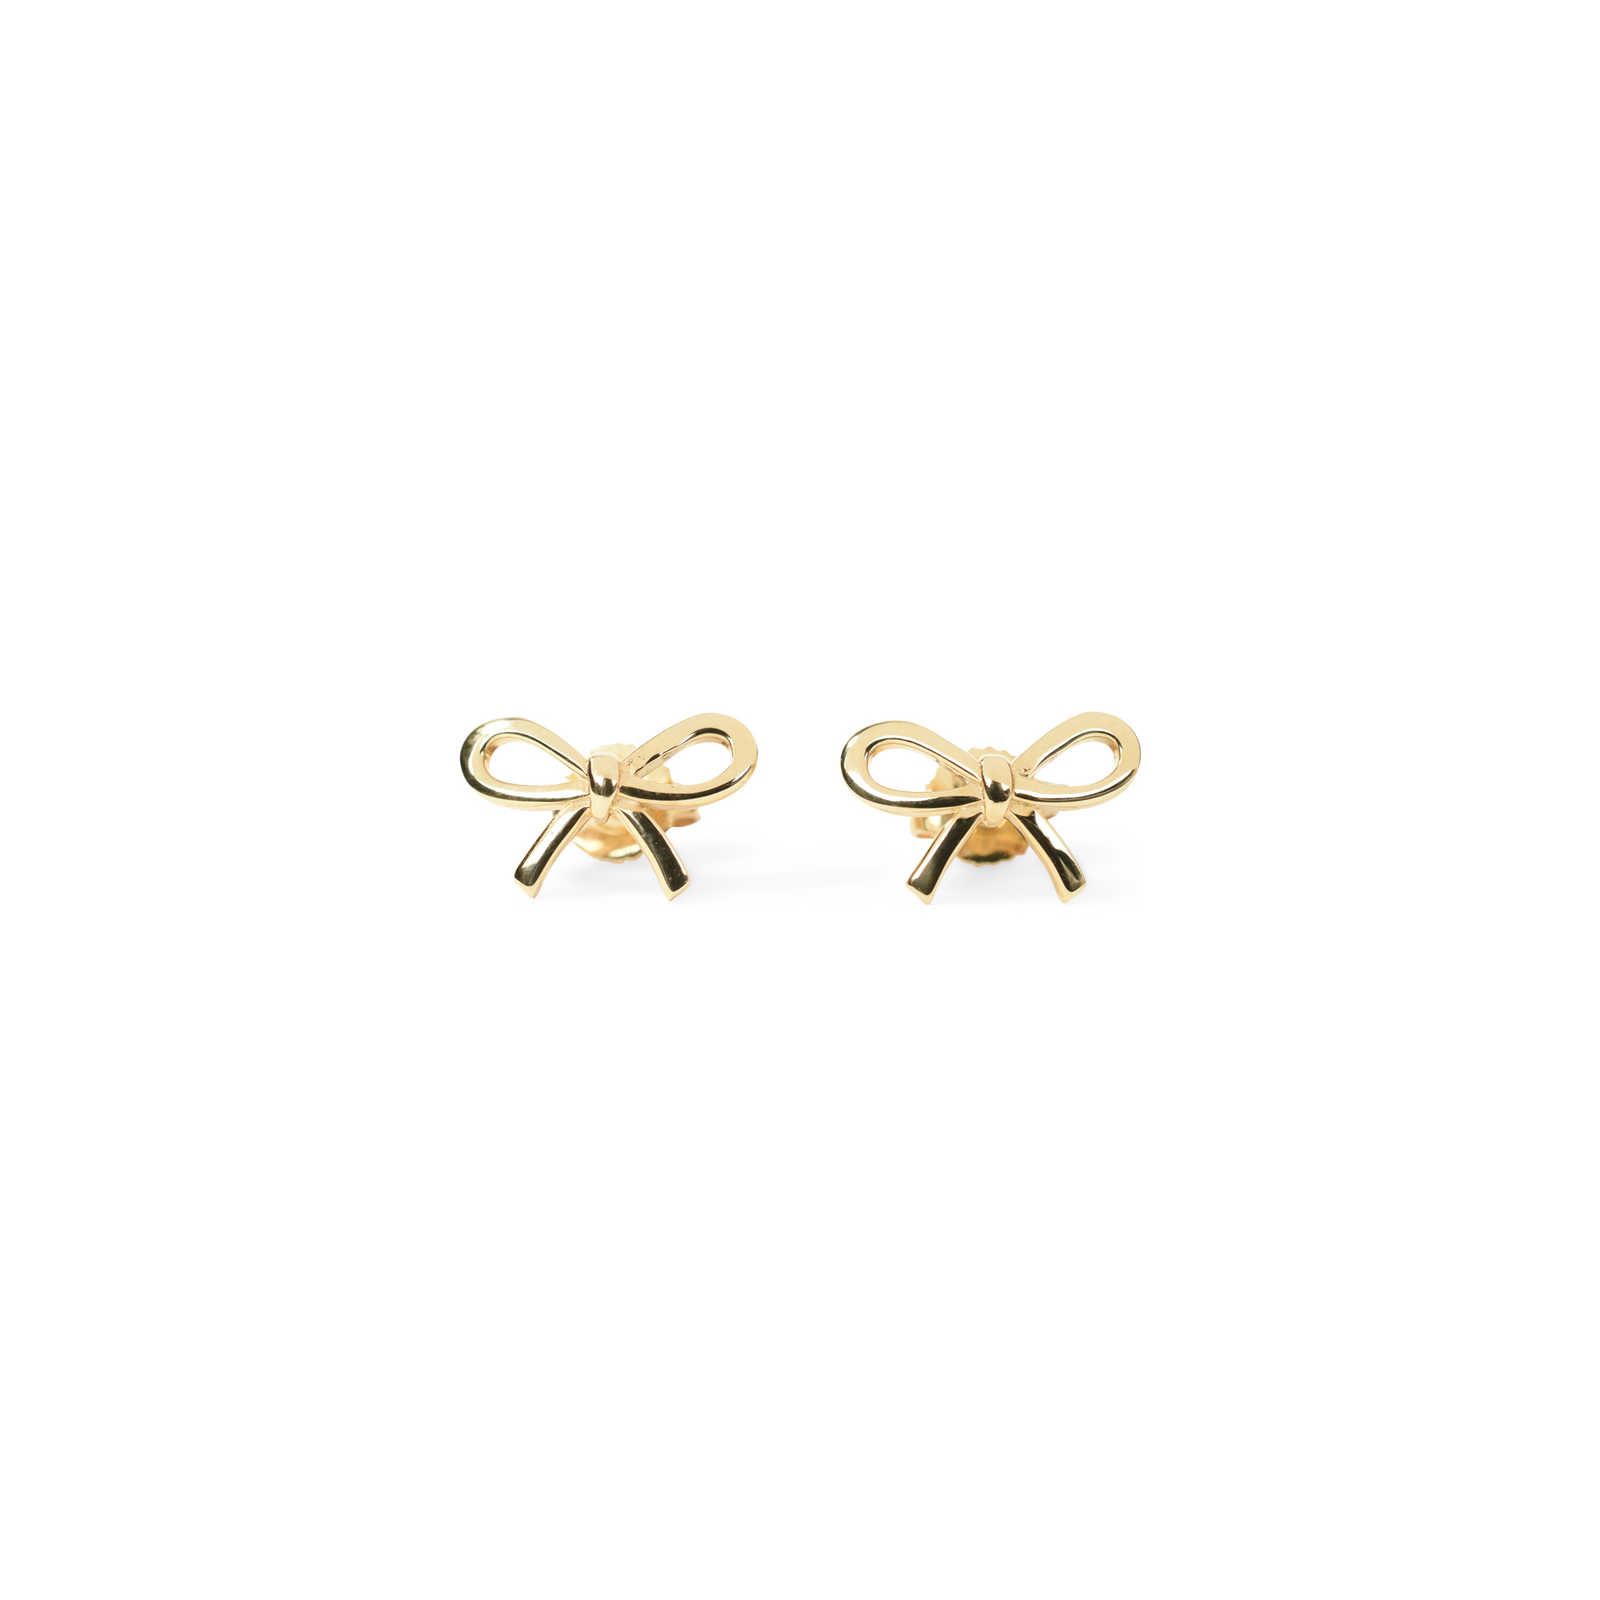 Authentic Pre Owned Tiffany Co Bow Earrings Pss 233 00035